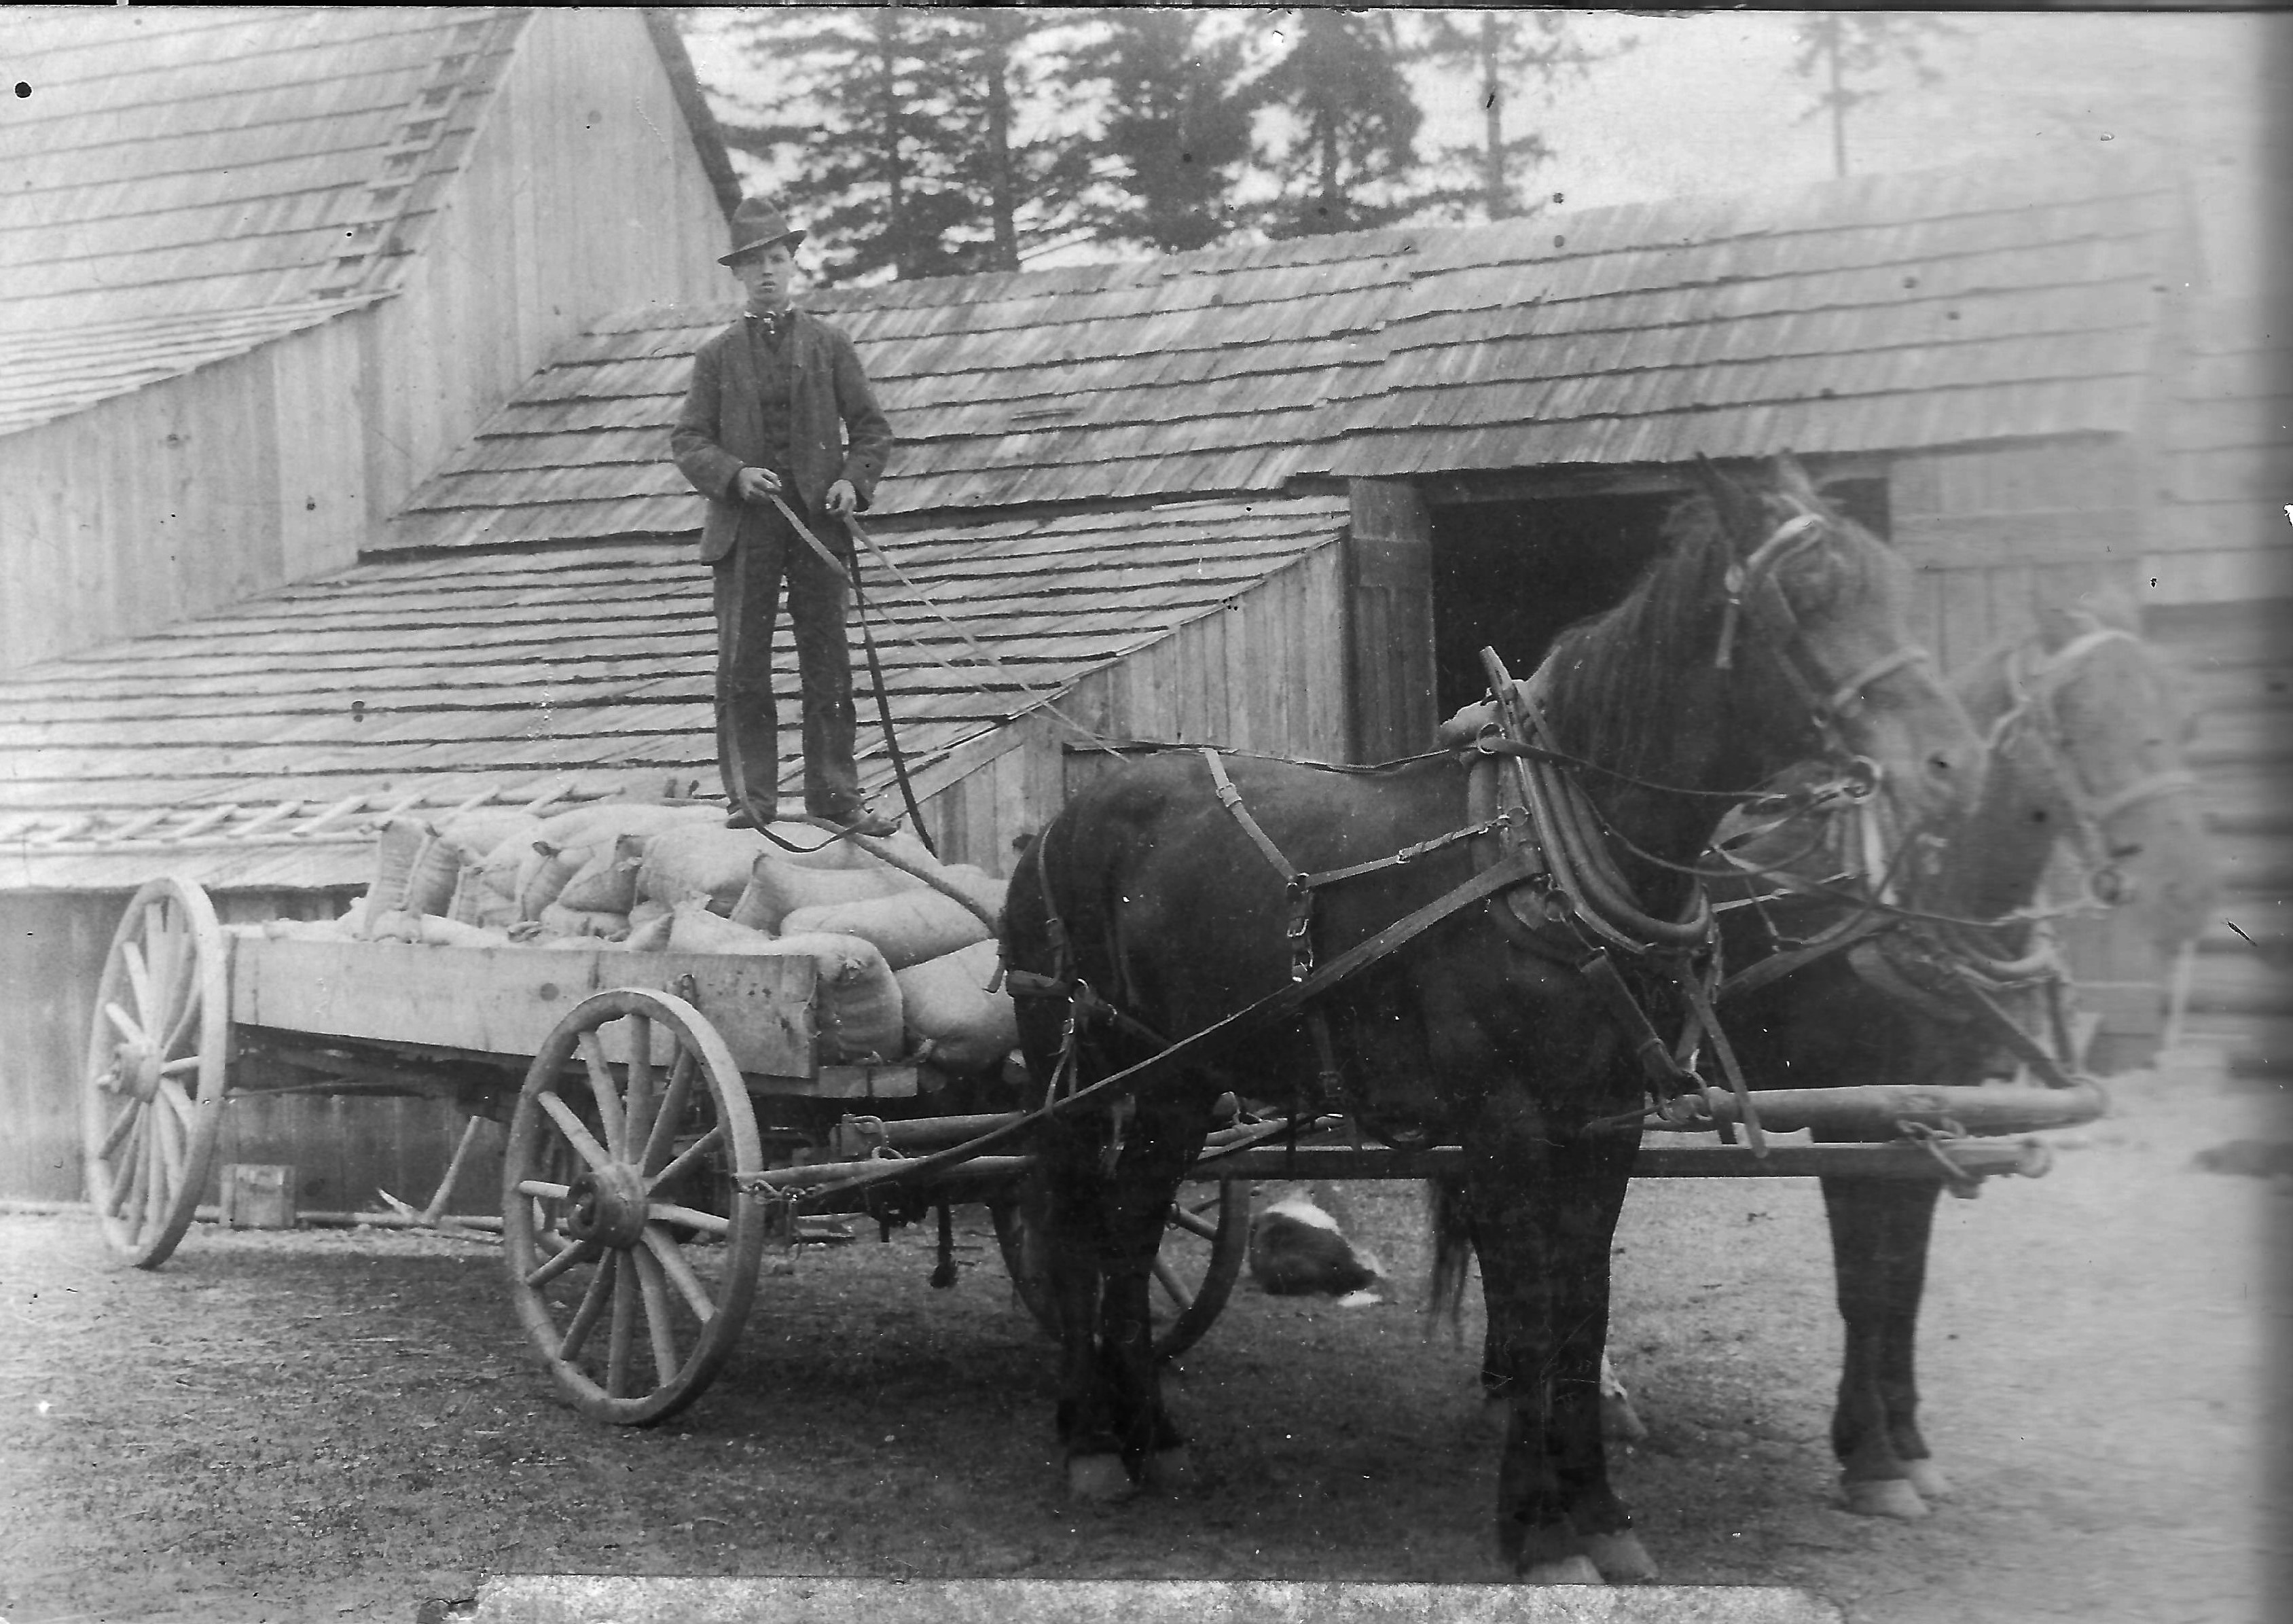 A young man standing on horse drawn cart